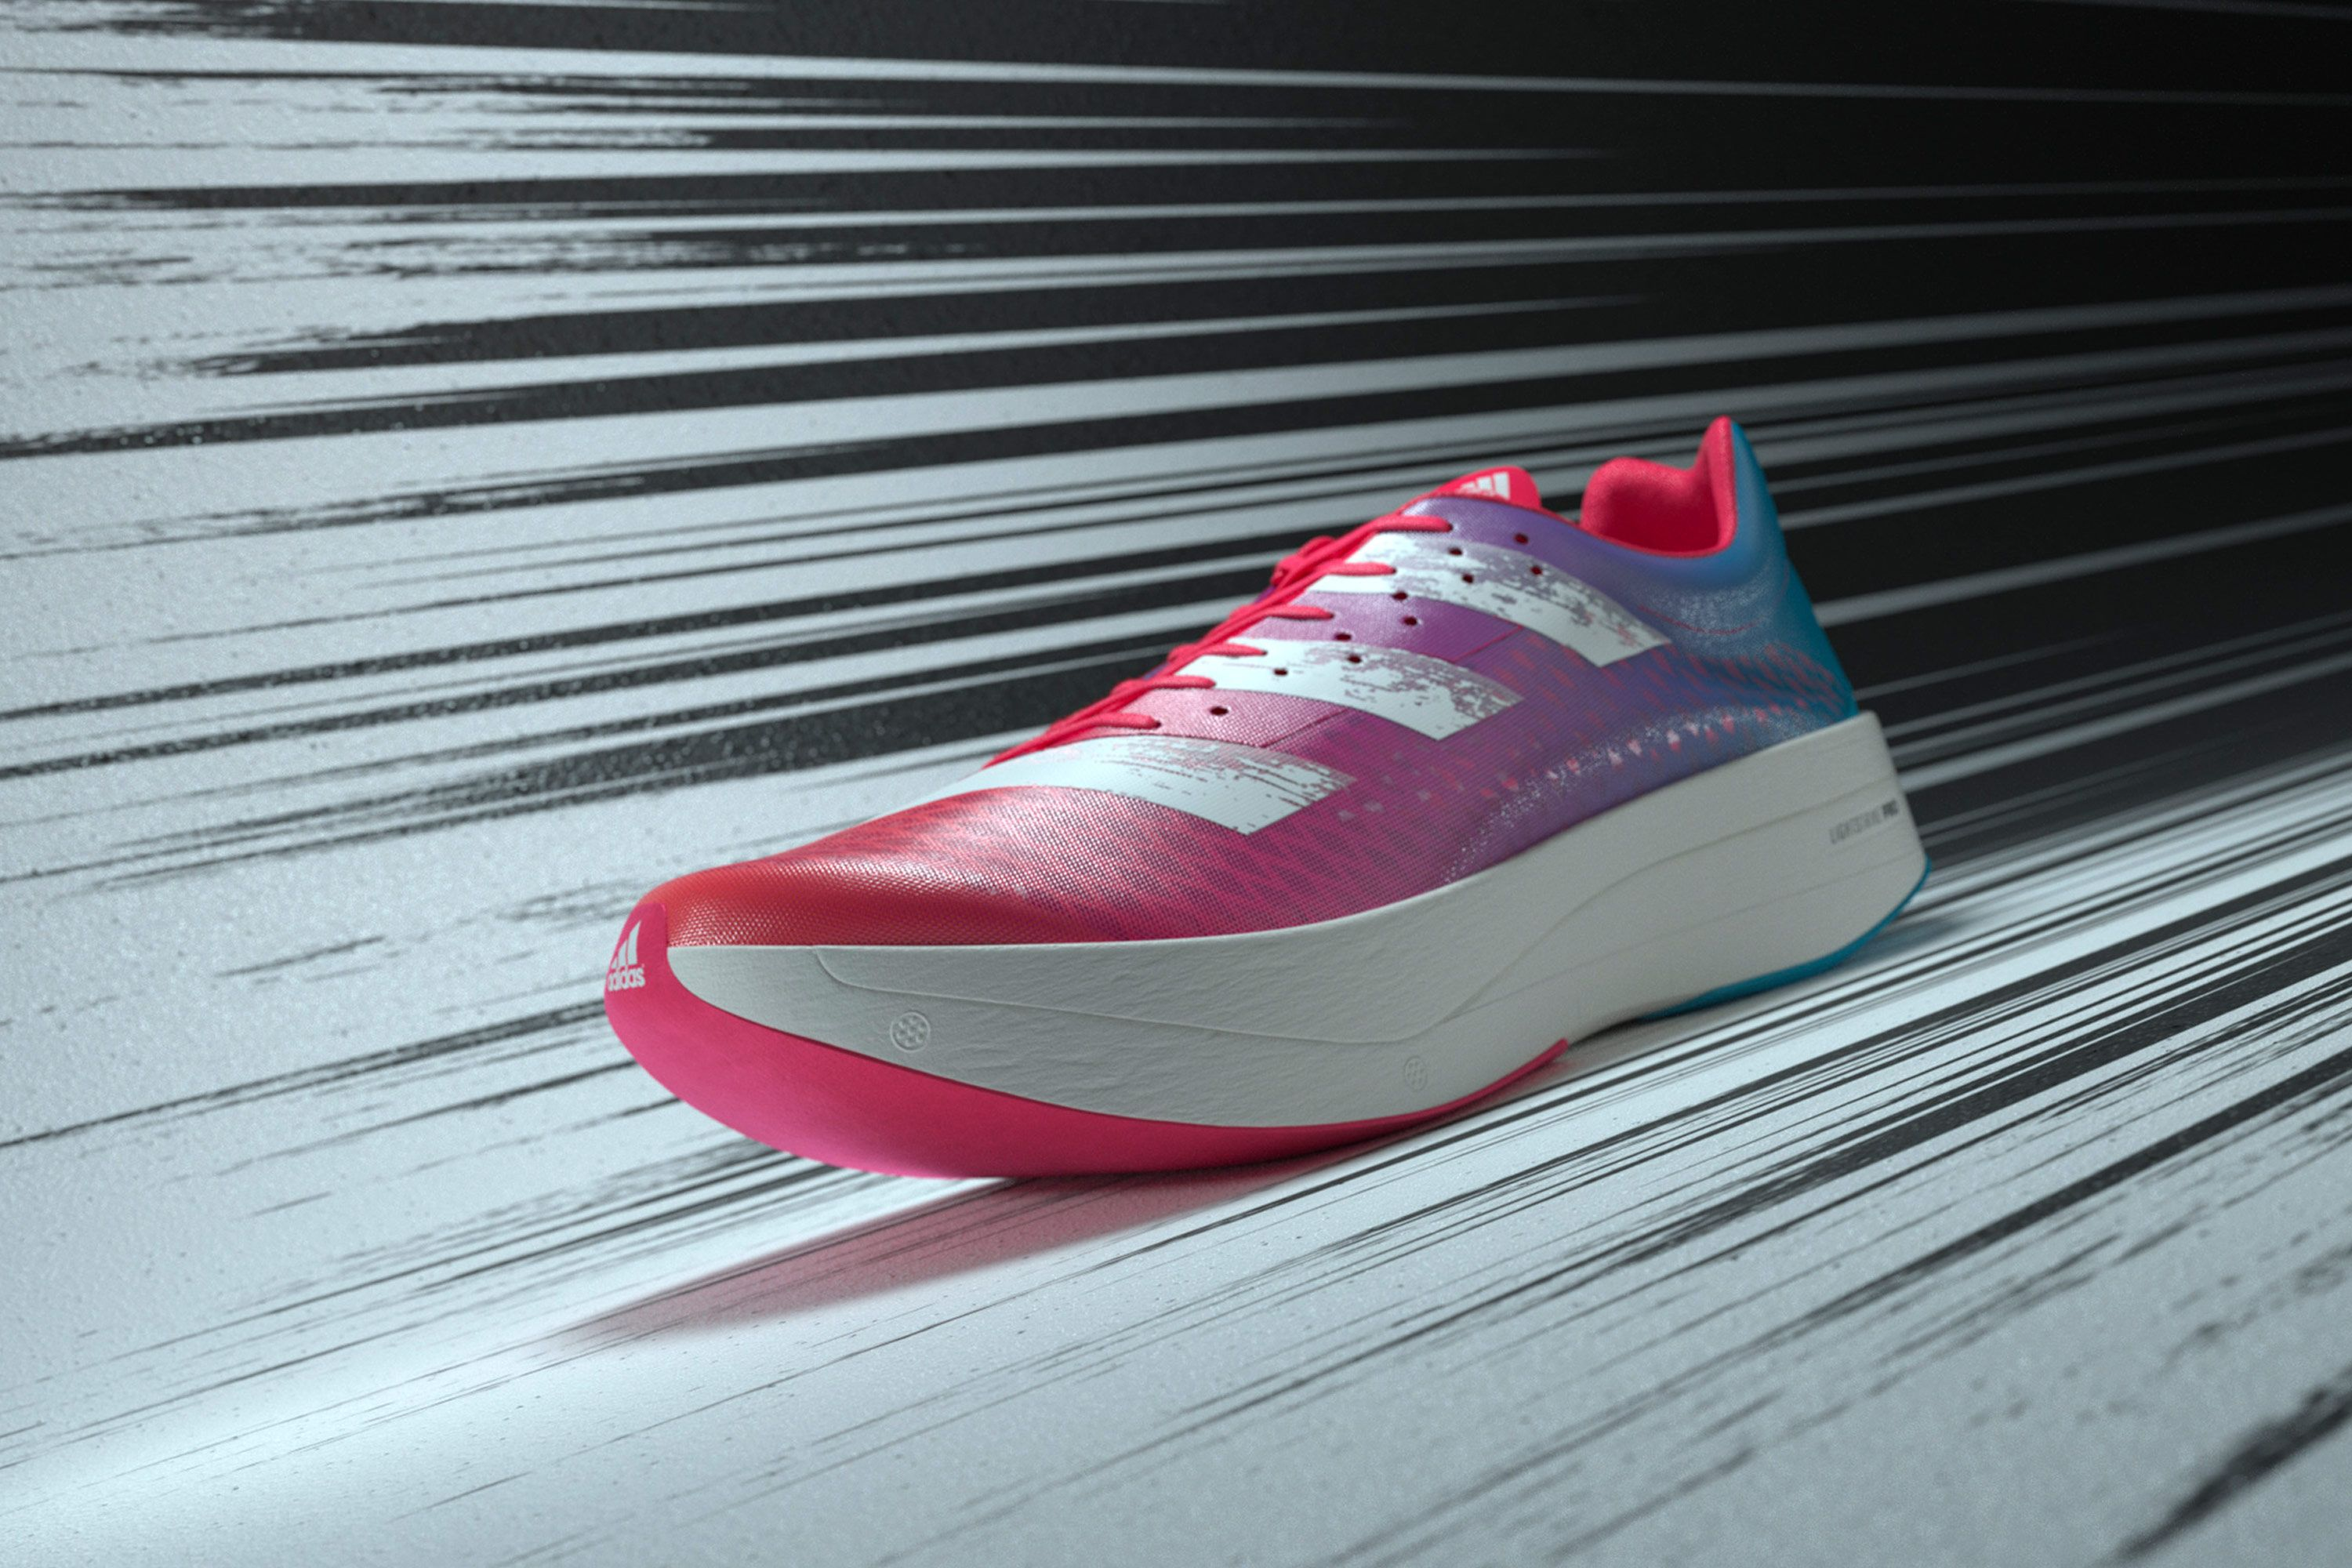 Adidas Shoe That Sold Out in 15 Minutes